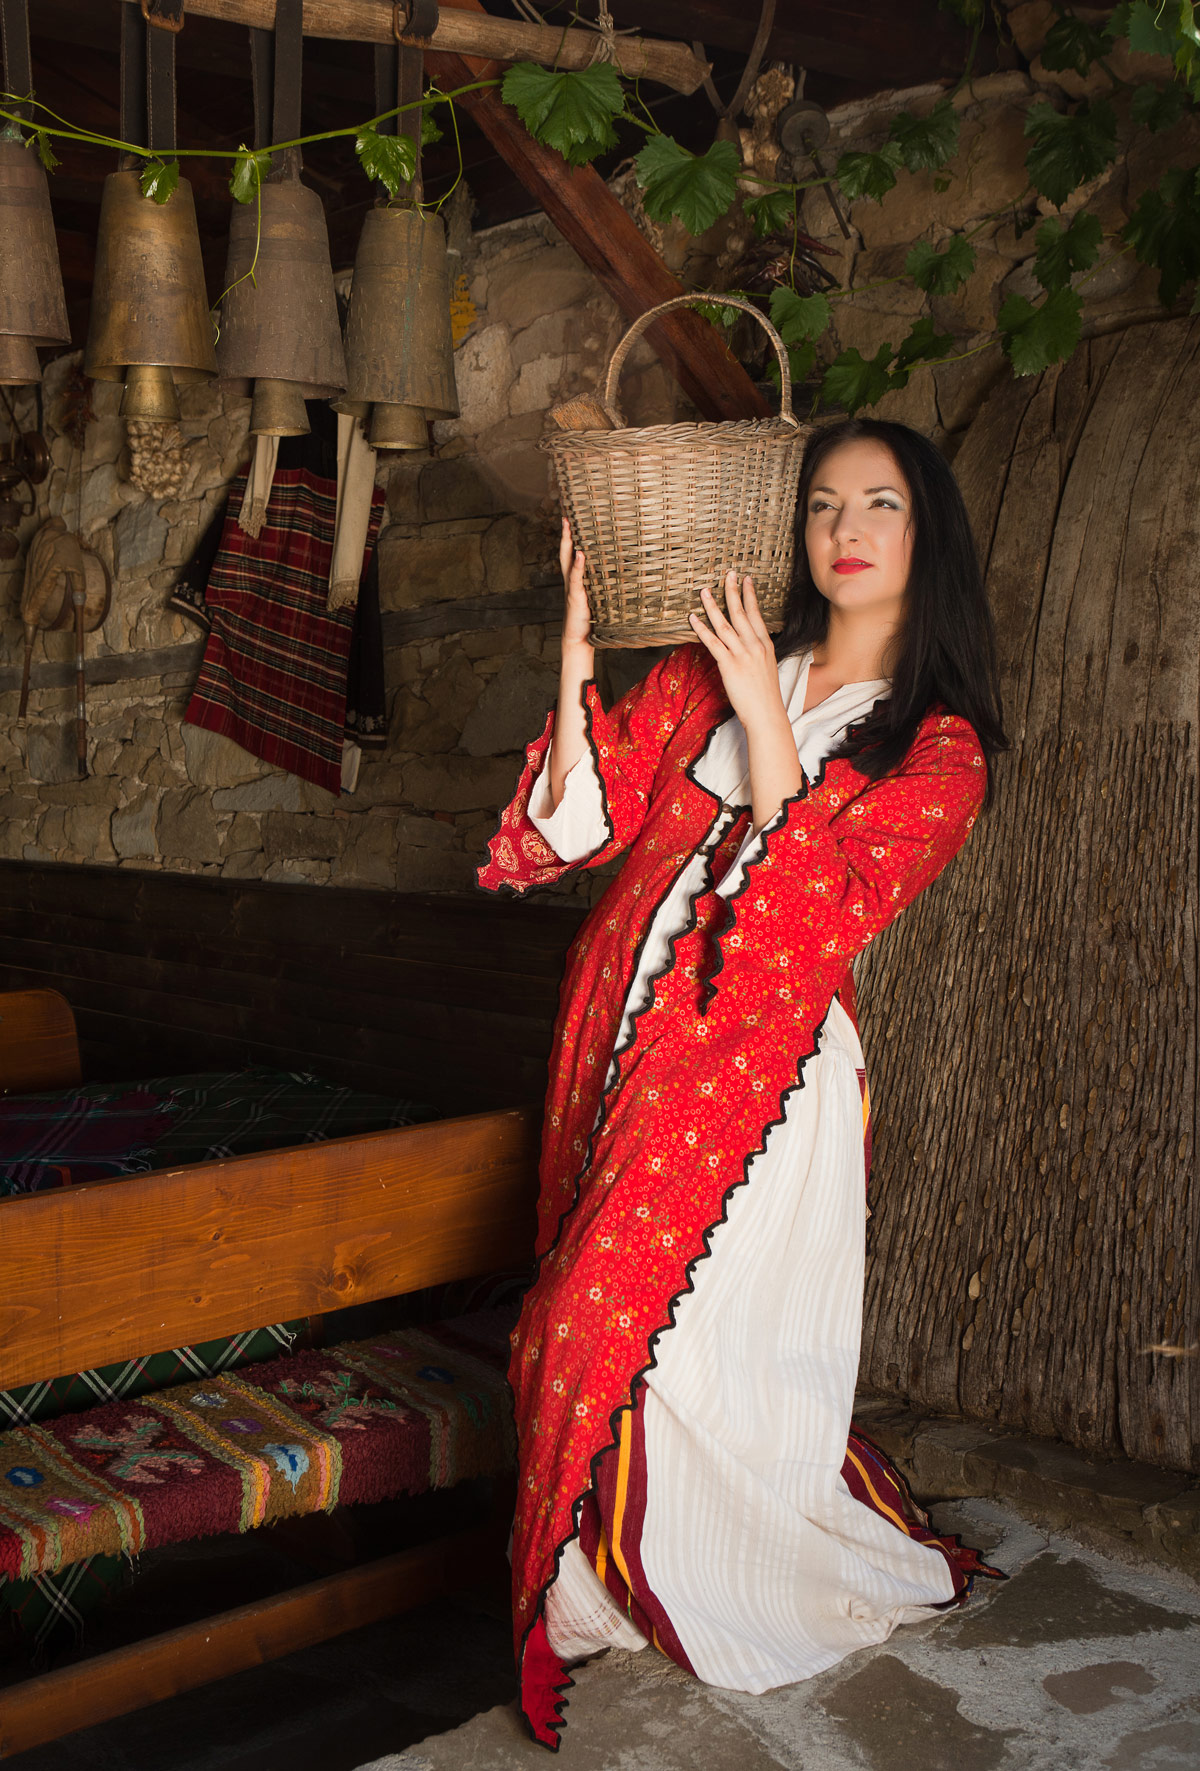 Beautiful woman wearing the traditional folklore costume